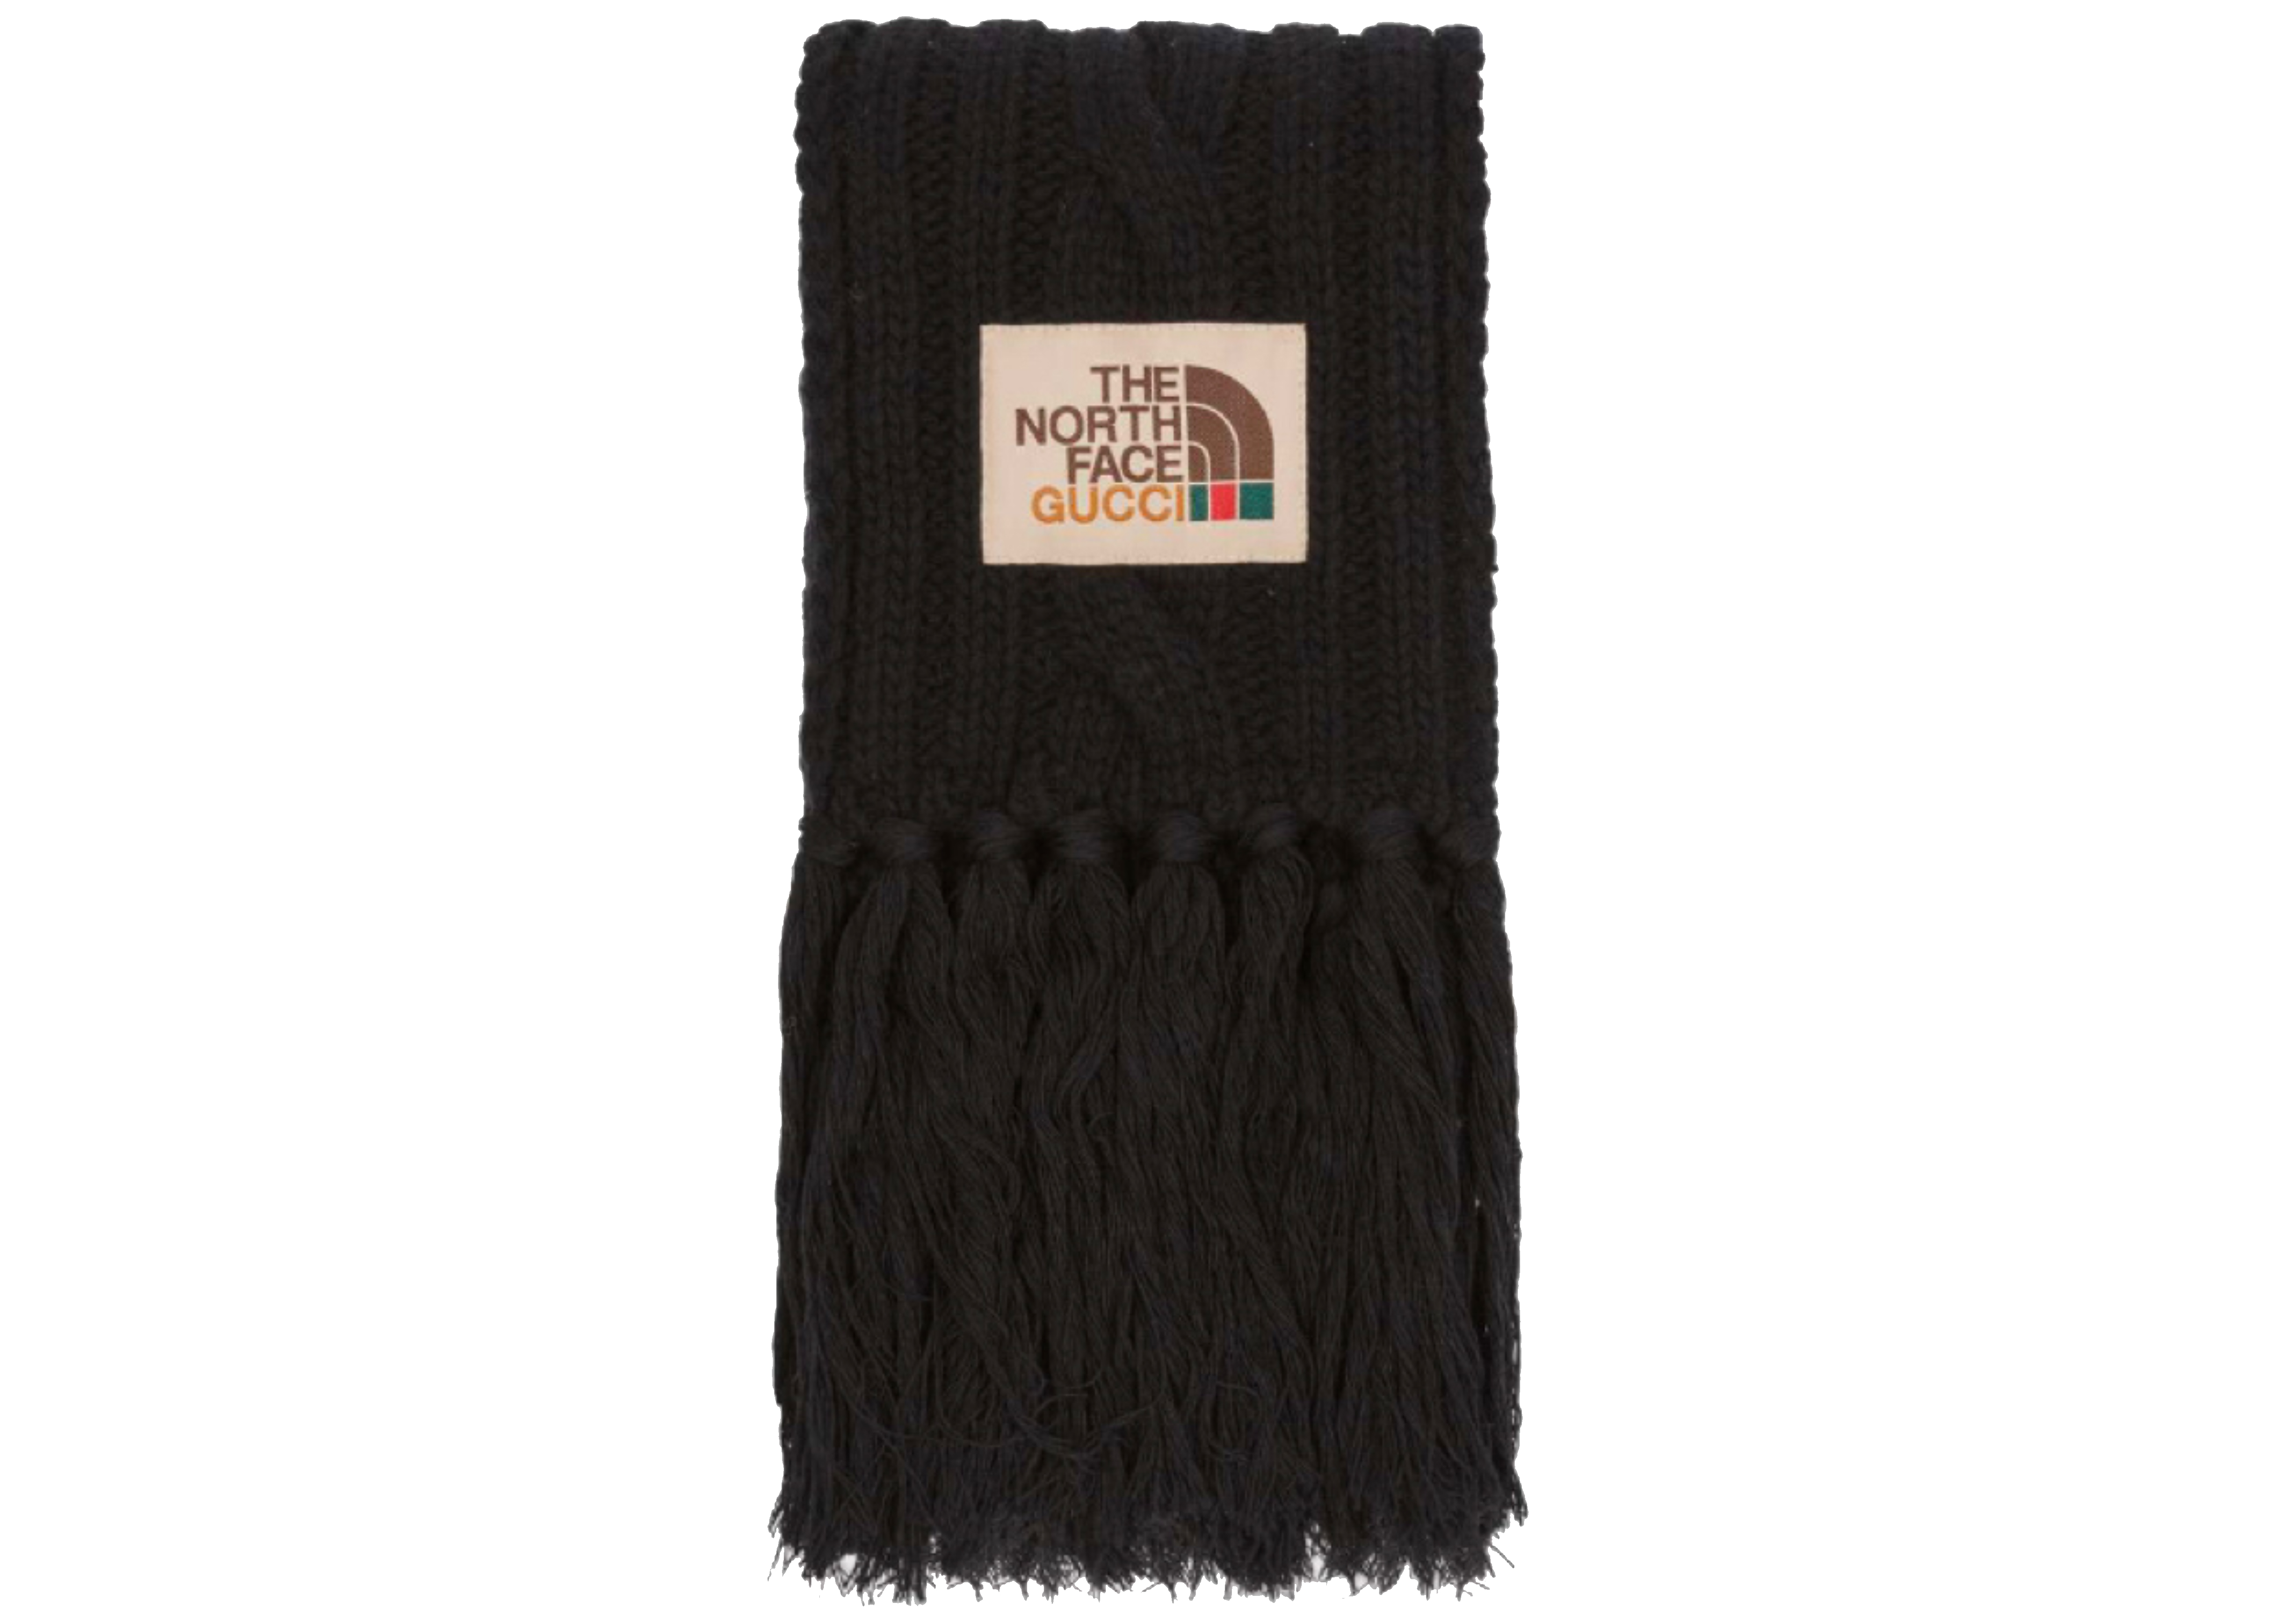 Pre-owned Gucci  X The North Face Wool Scarf Black